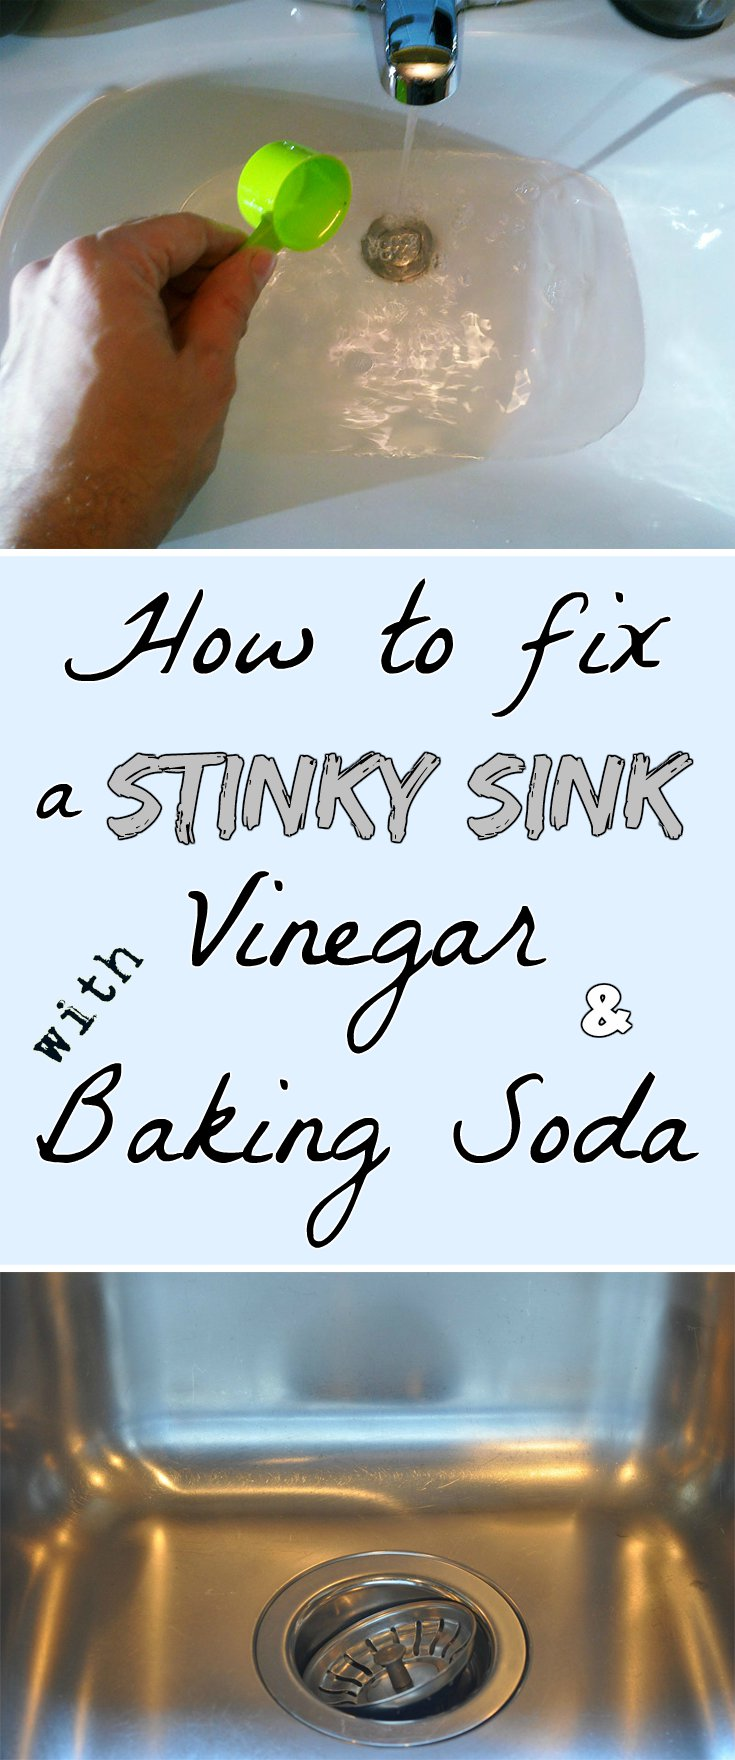 unclog kitchen sink vinegar baking soda - zitzat